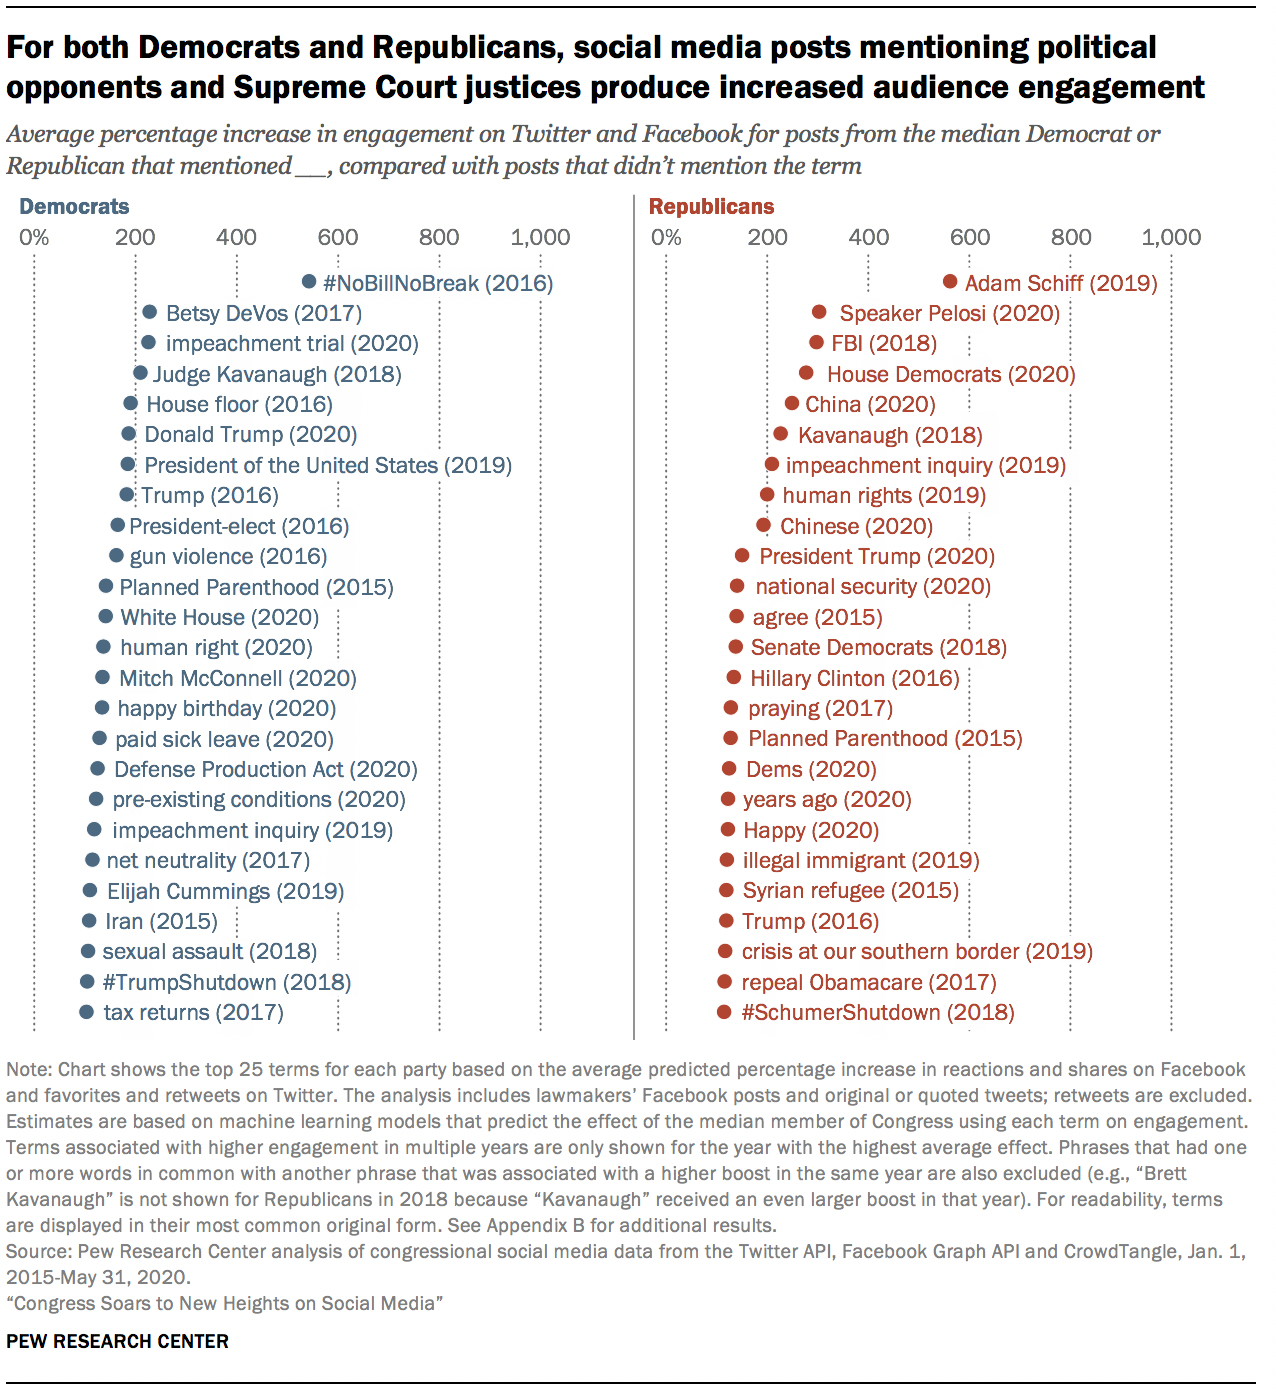 For both Democrats and Republicans, social media posts mentioning political opponents and Supreme Court justices produce increased audience engagement